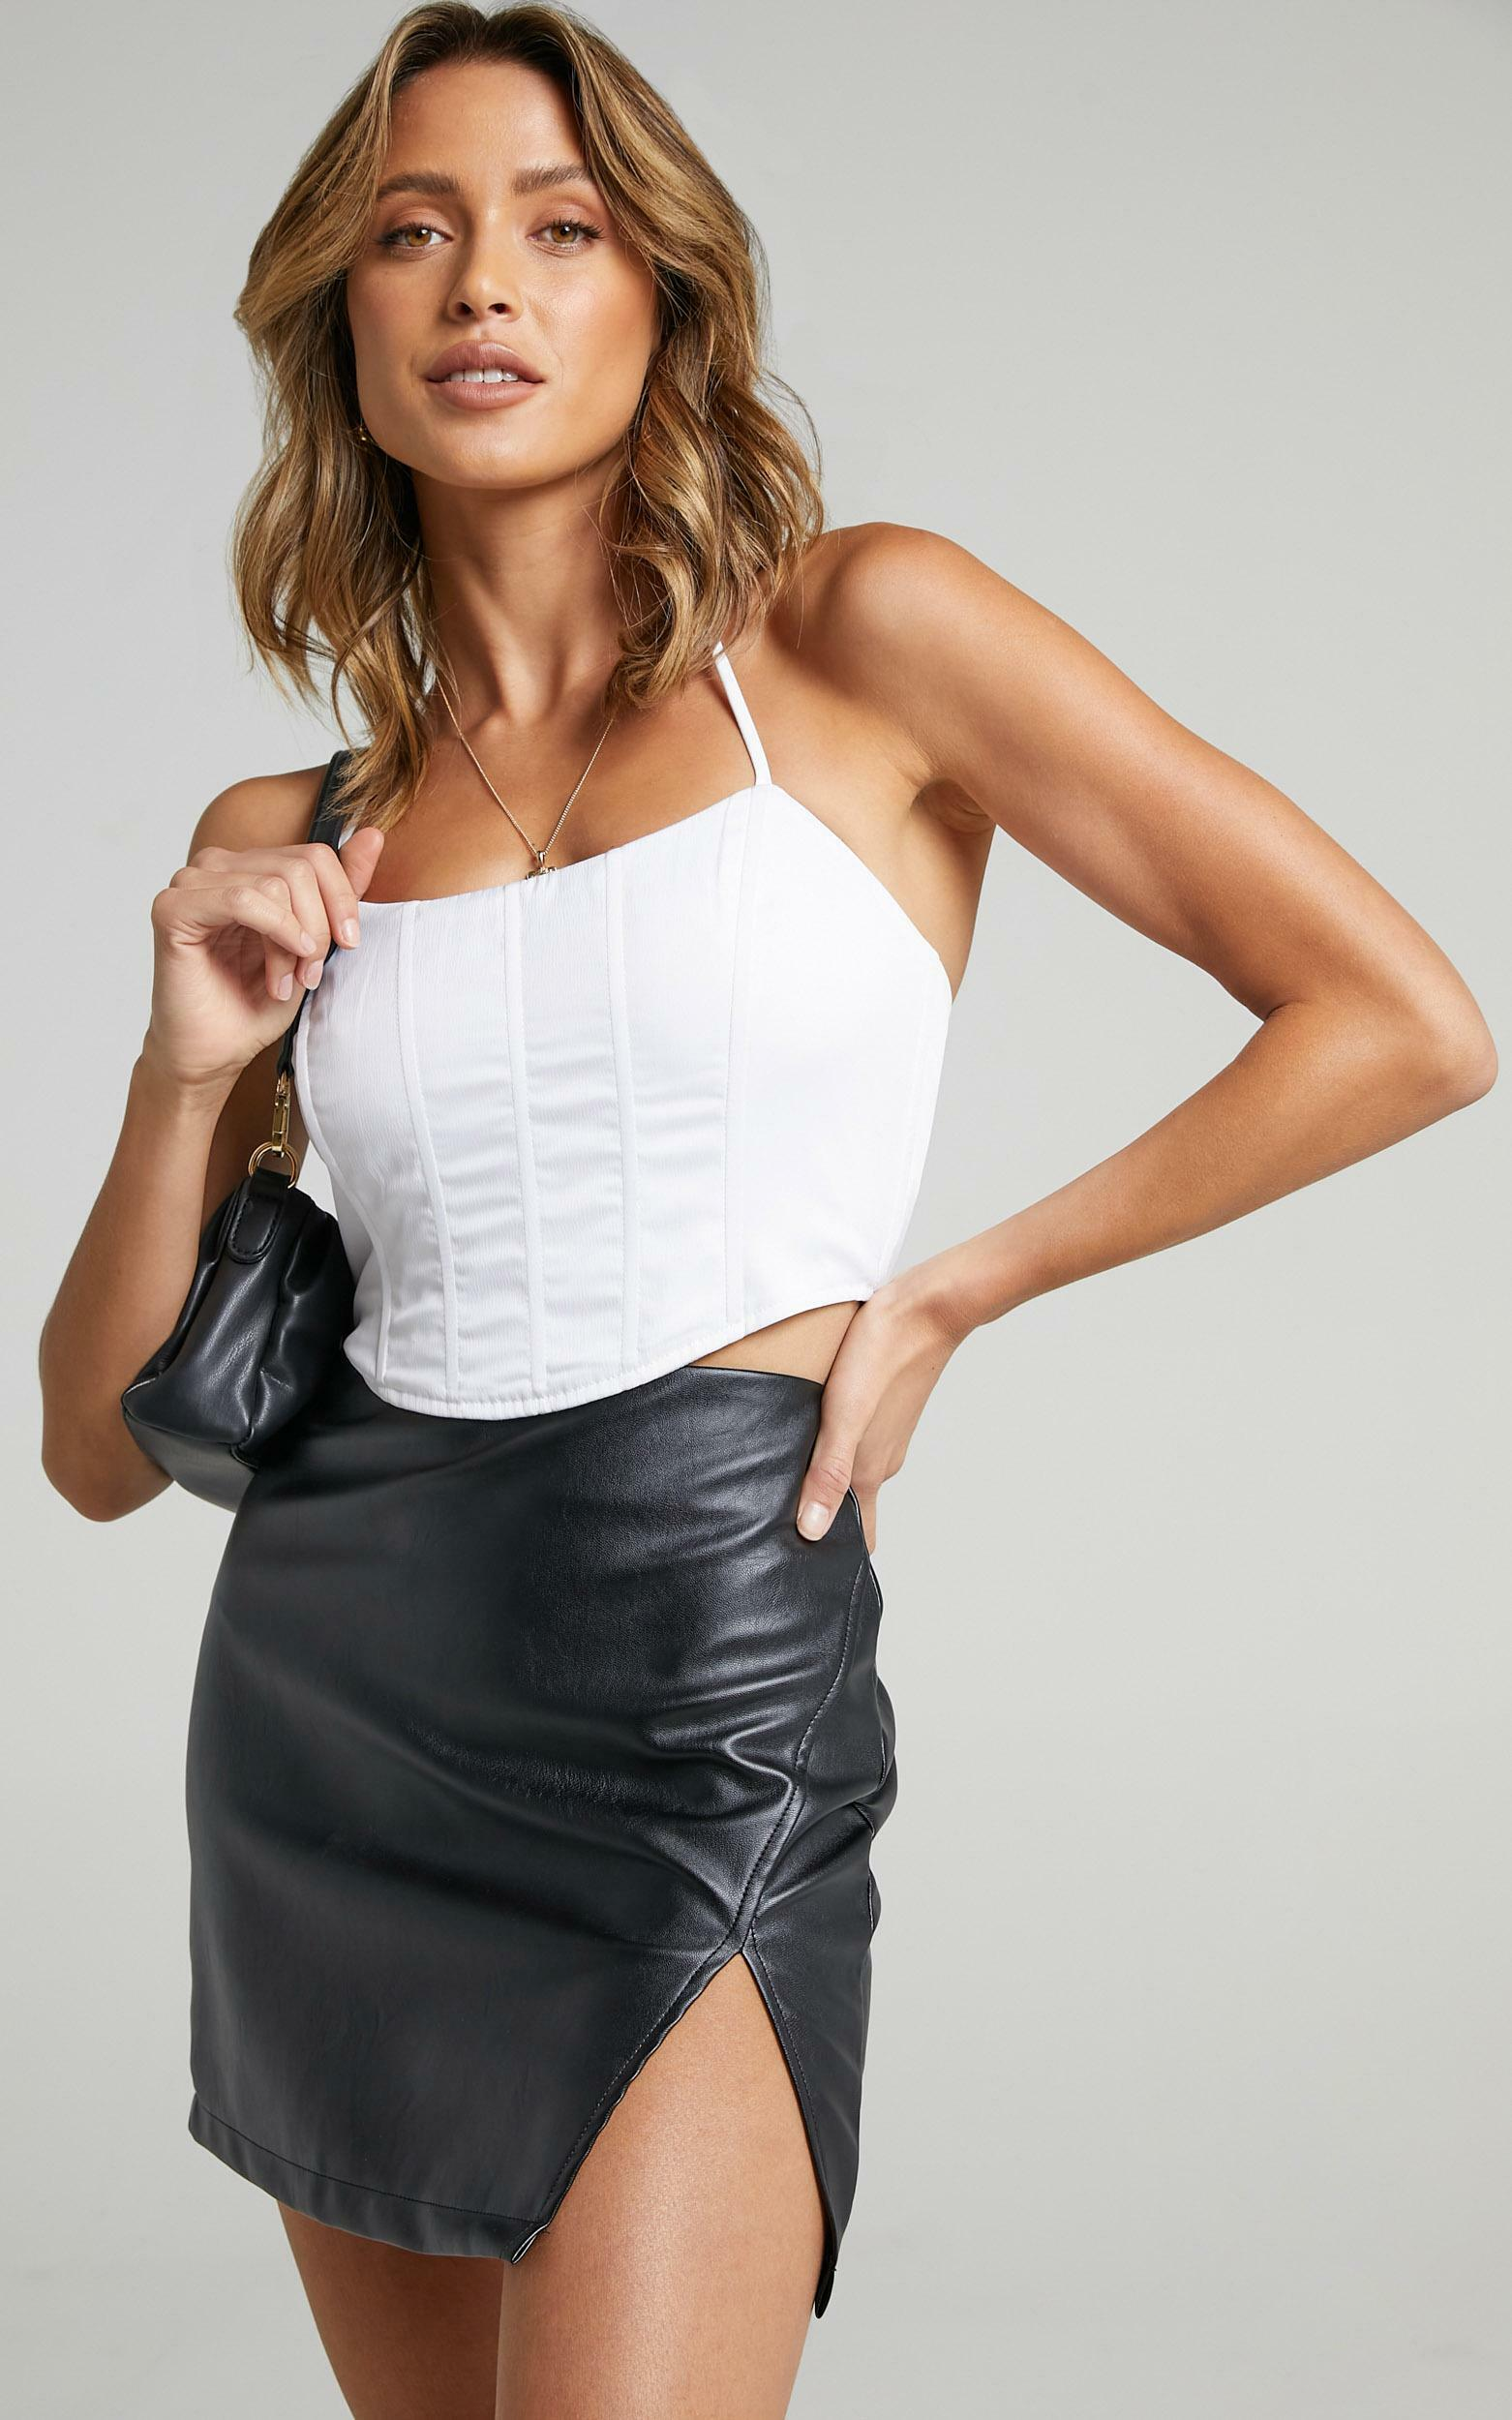 In The Name Of Love  Leatherette Mini Skirt in Black Leatherette - 08, BLK1, hi-res image number null